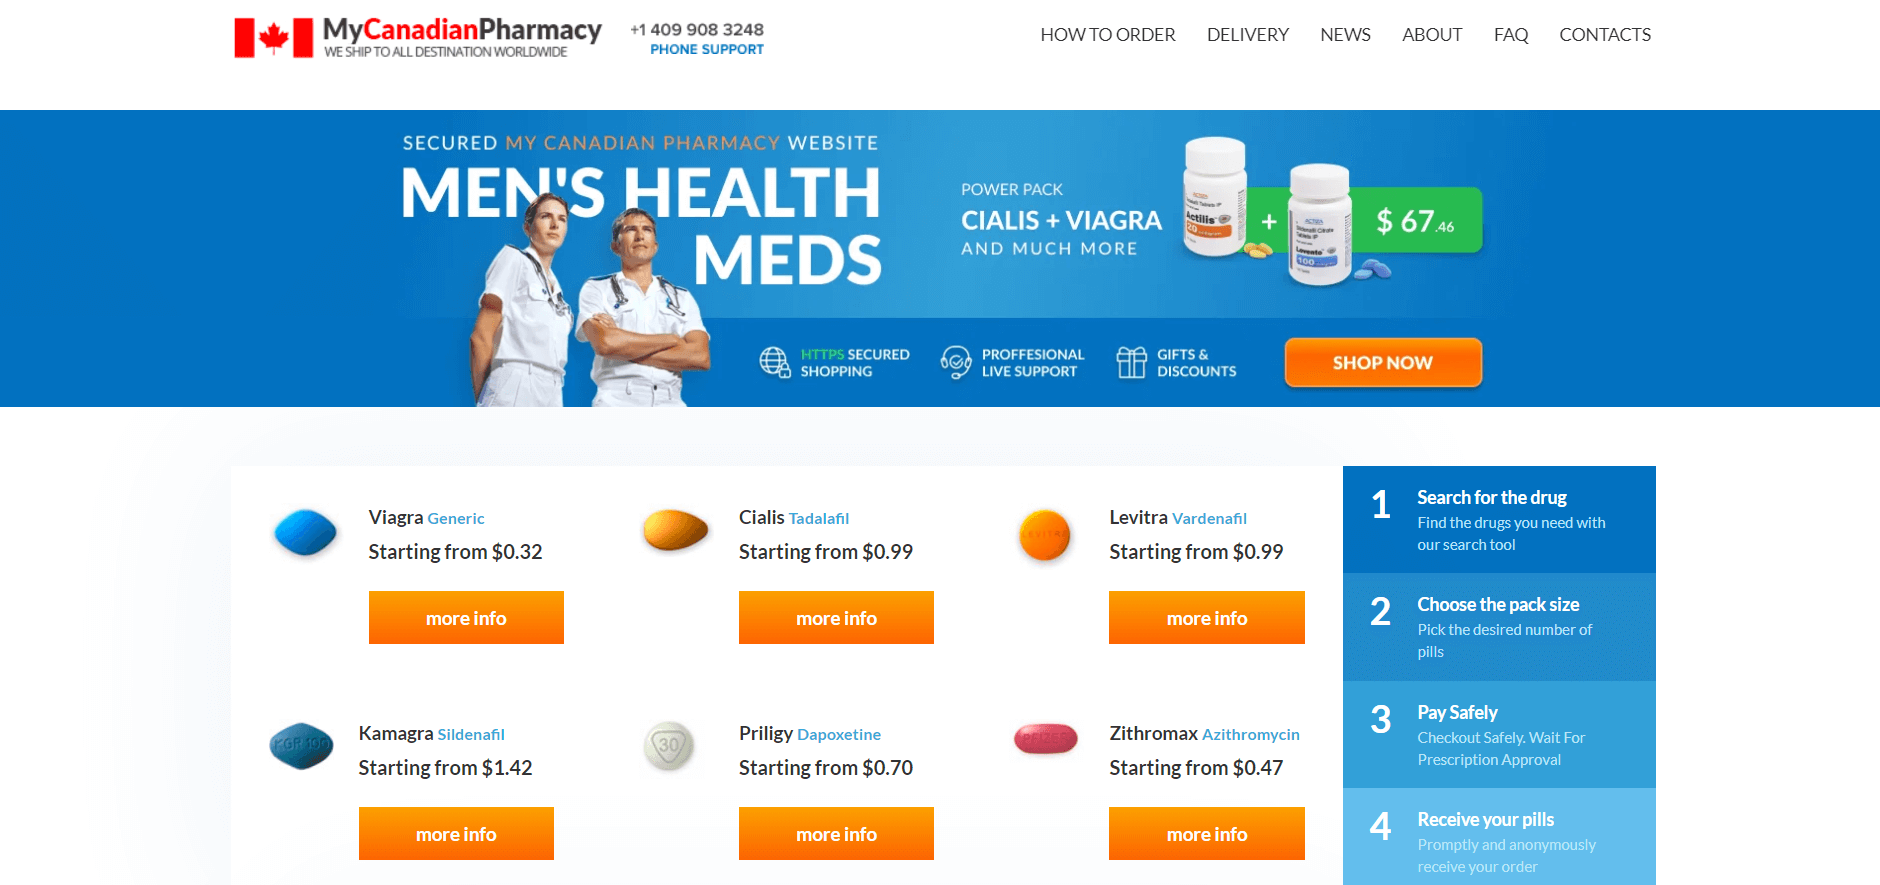 MyCanadianPharmacy.com Review